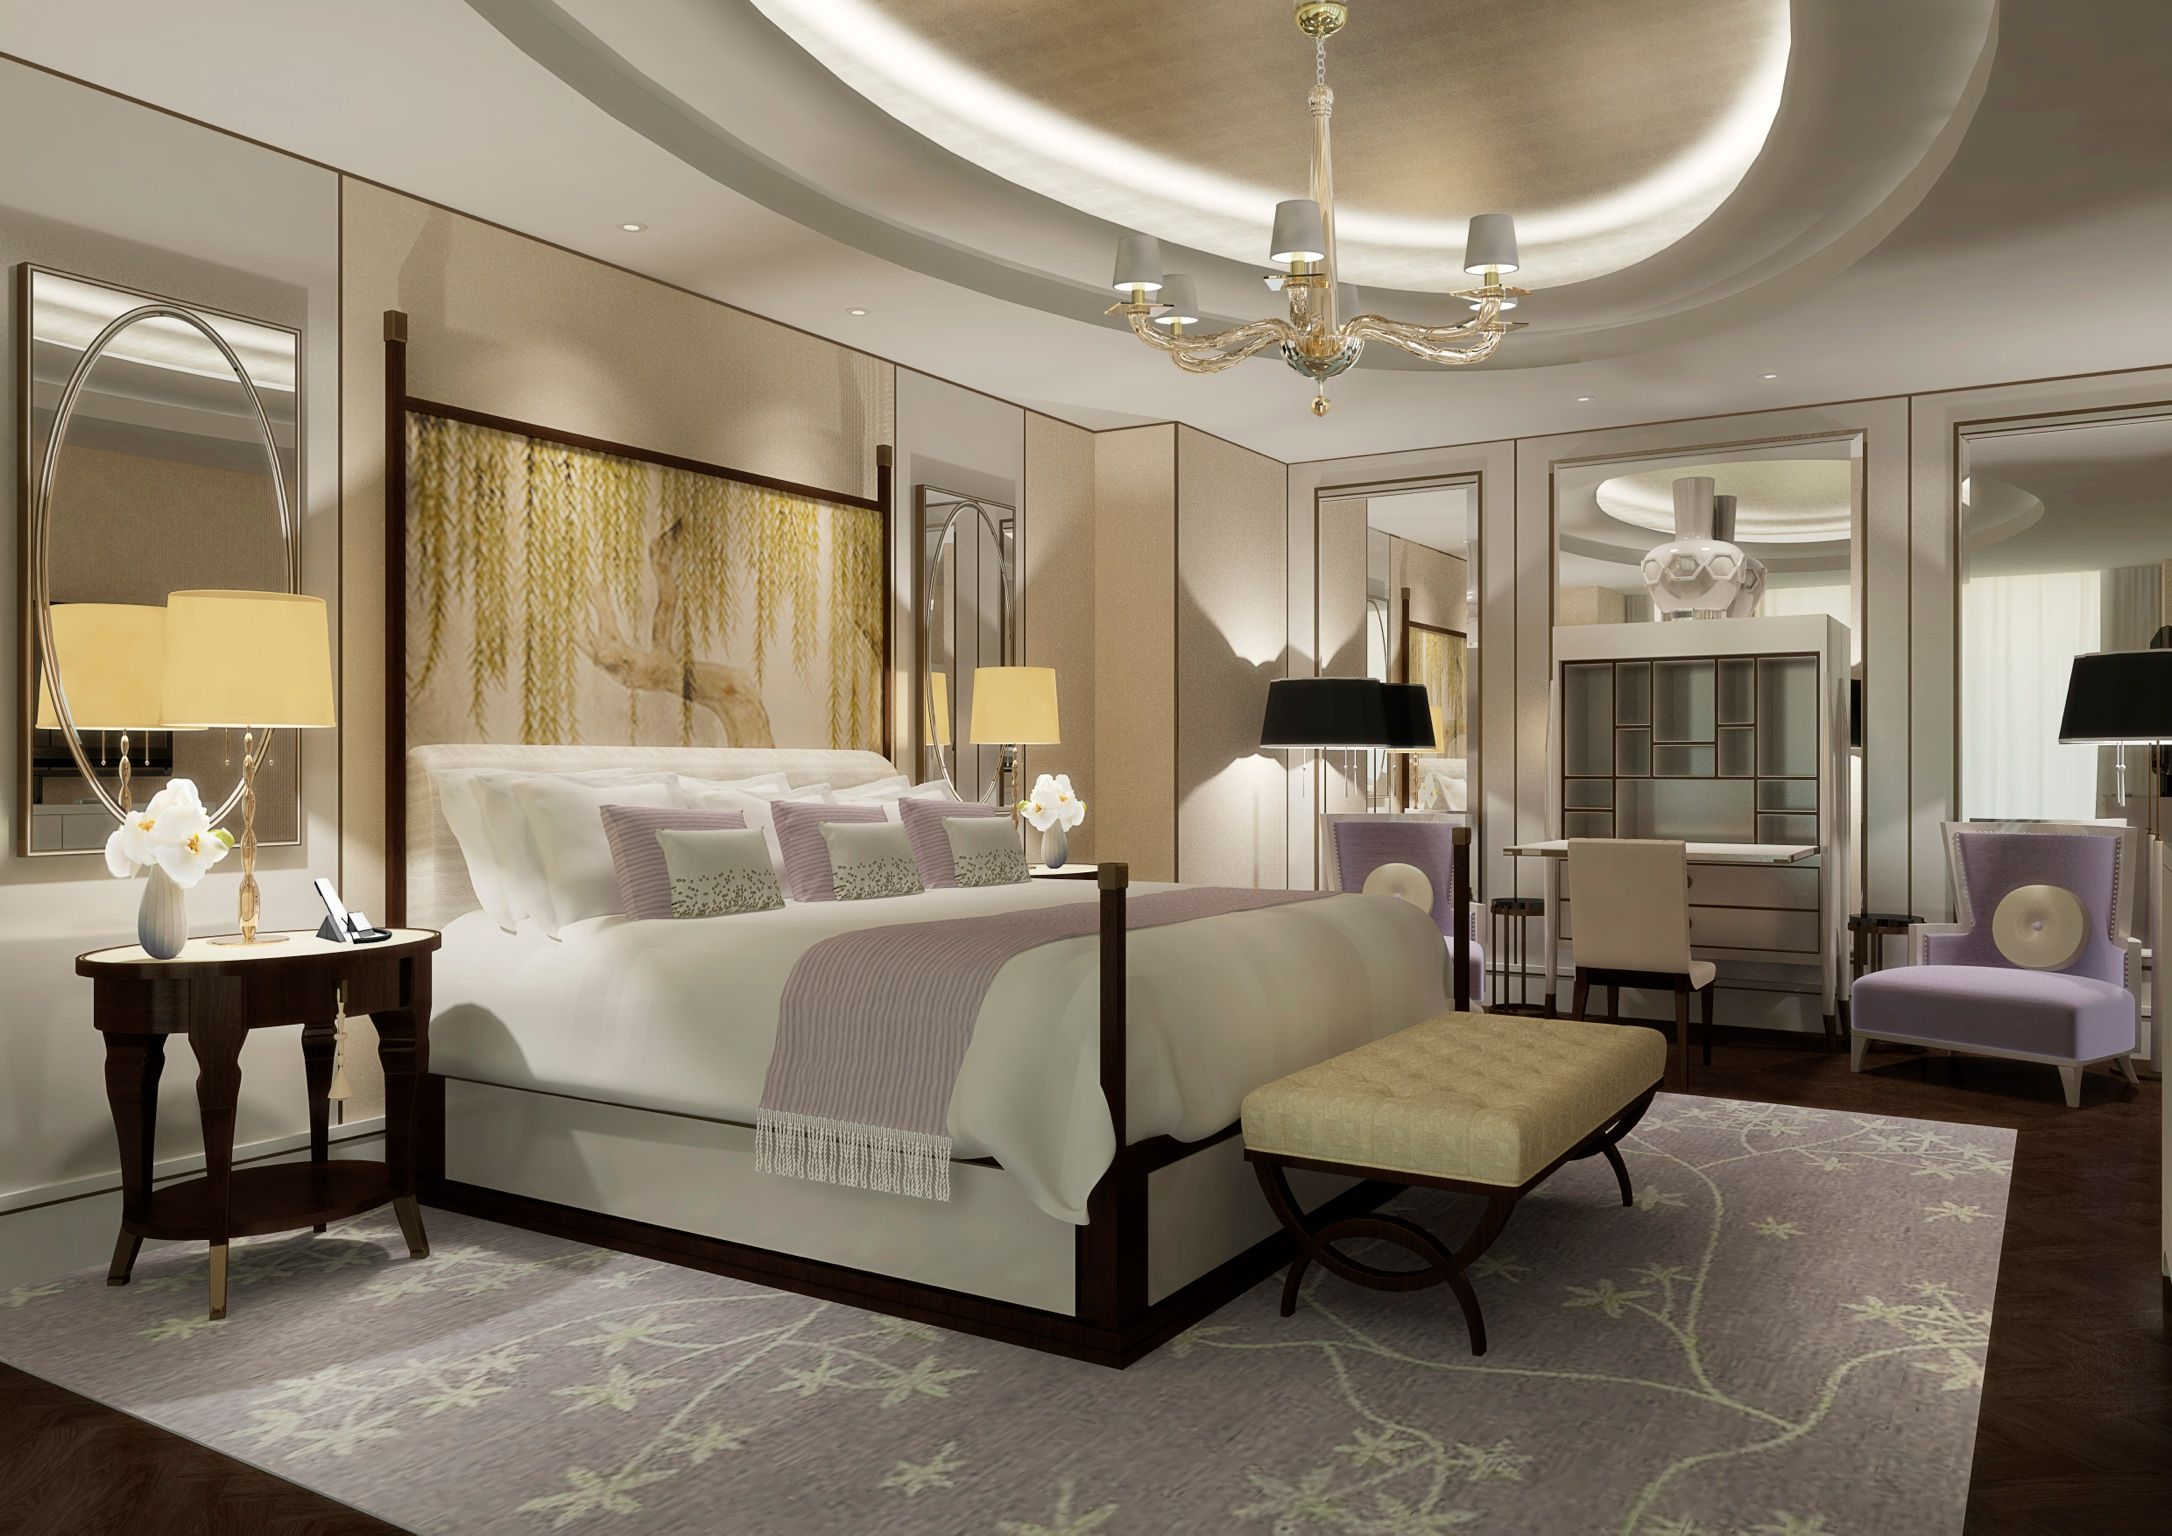 Infinity Suite At The Langham Chicago Hotels Pinterest